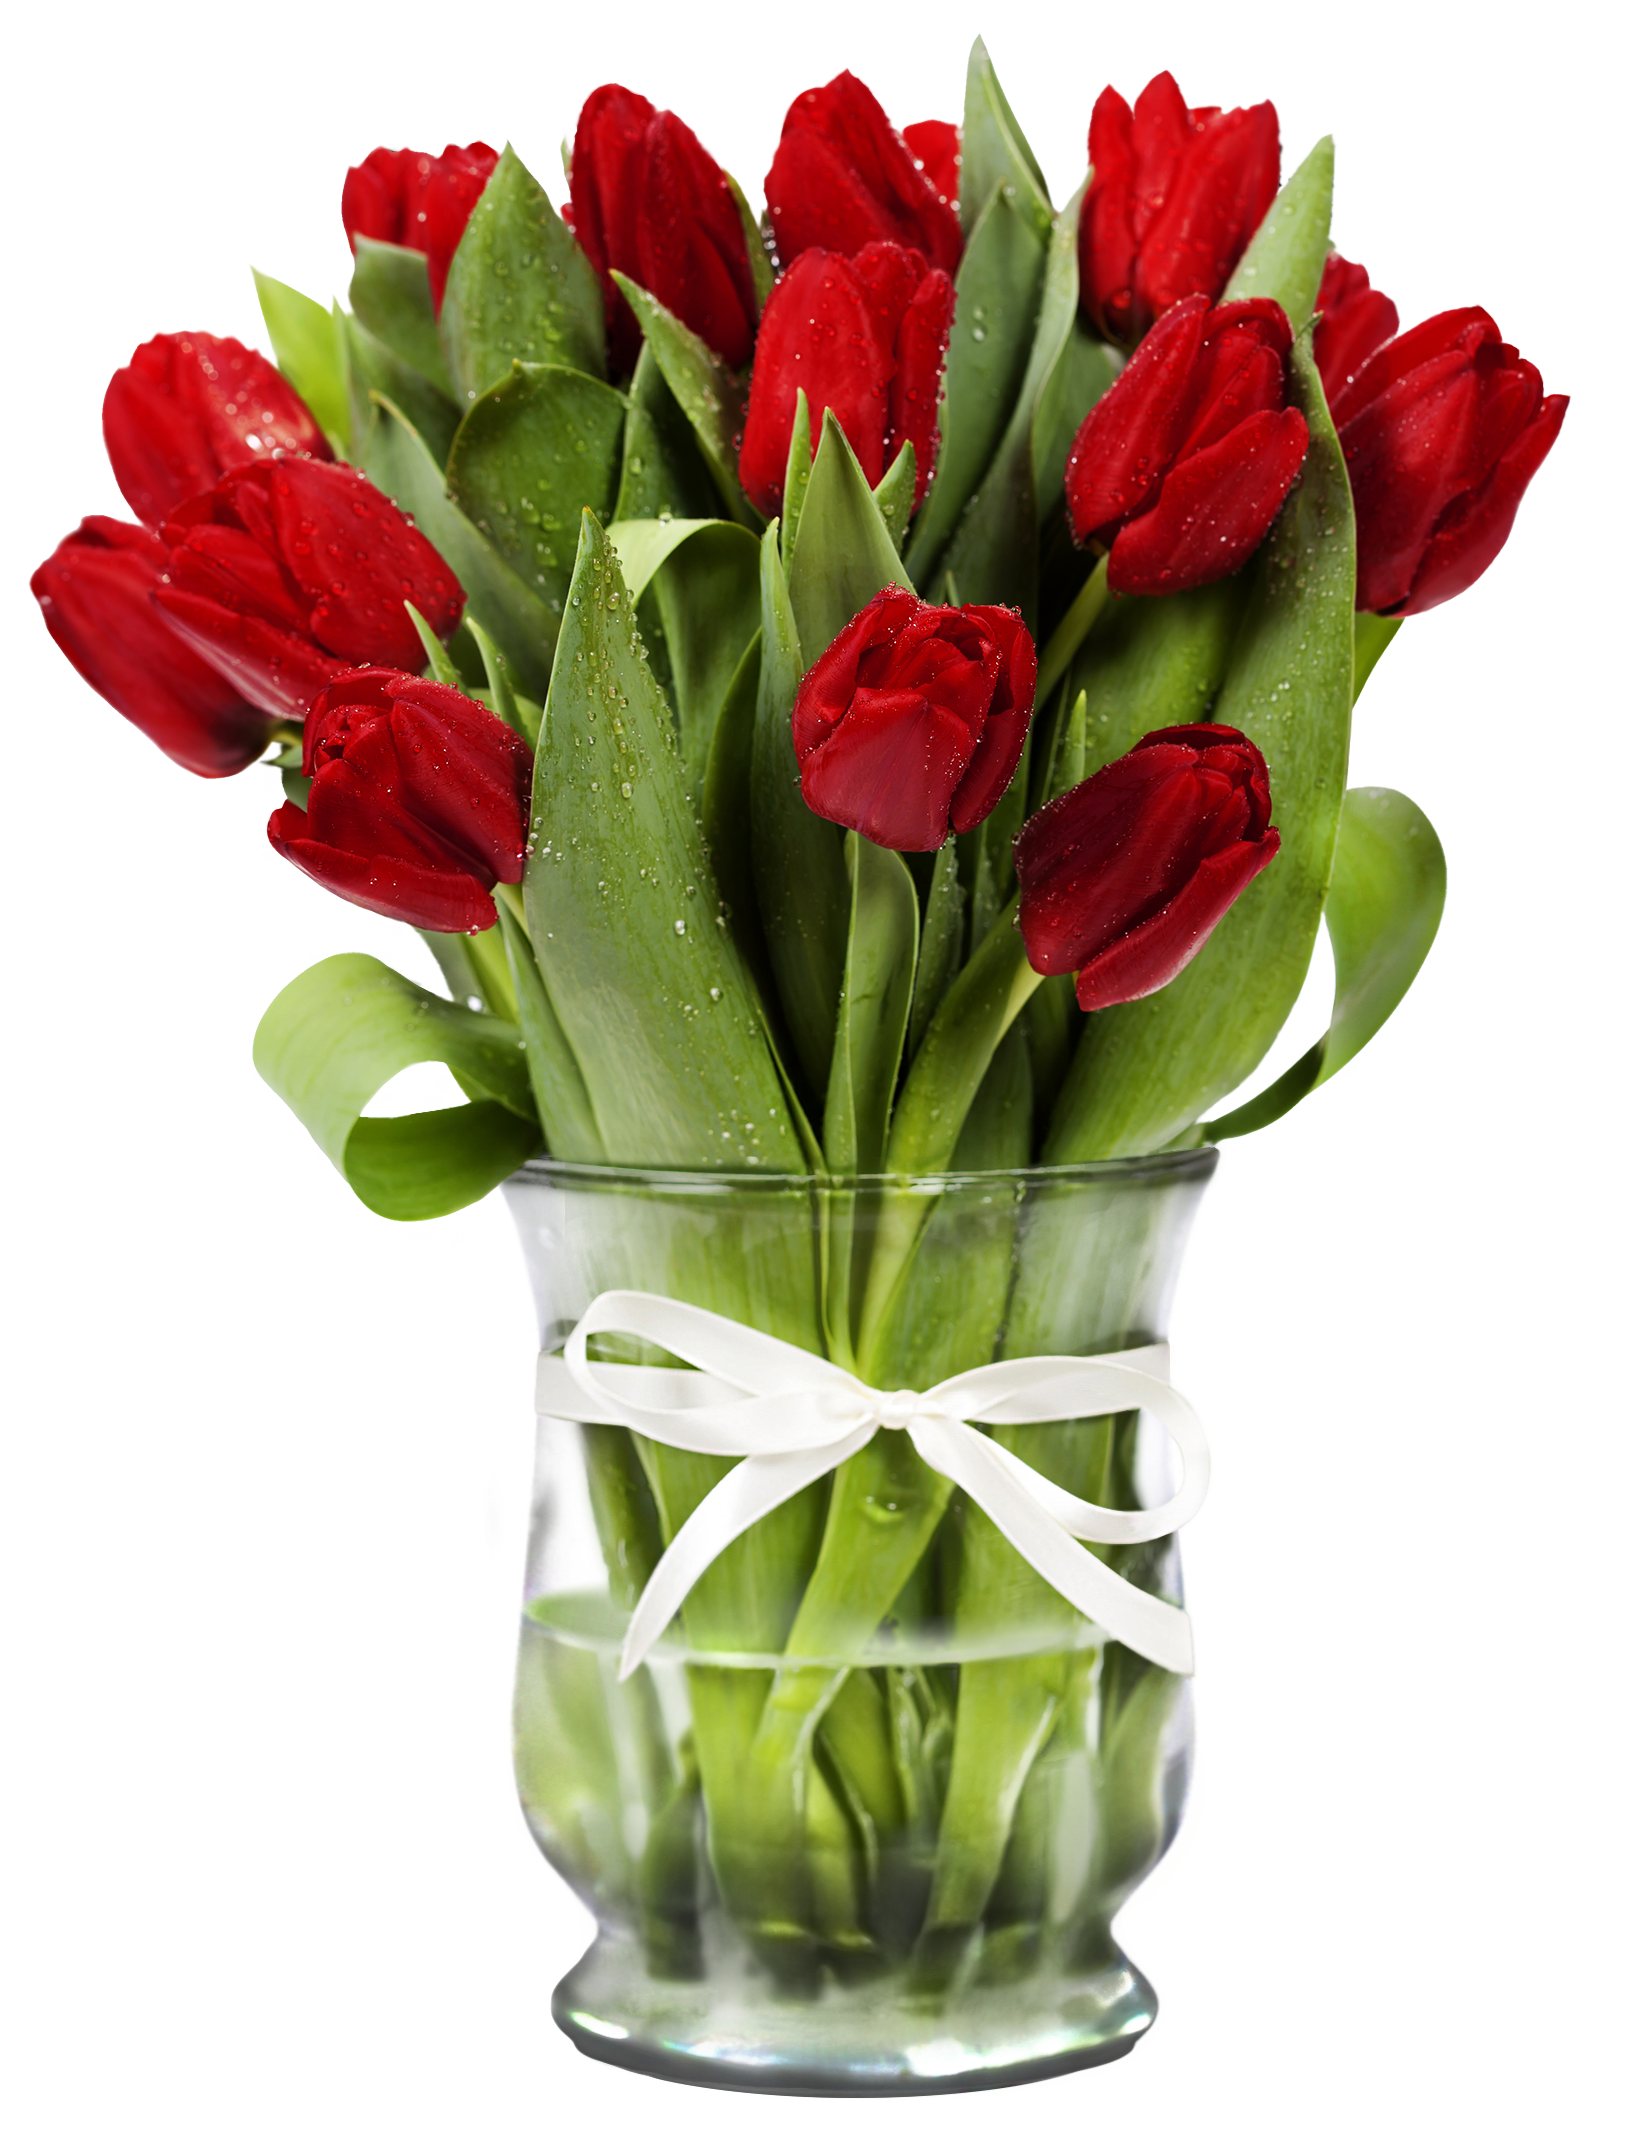 Flower in a vase clipart image Transparent Vase with Red Tulips | Gallery Yopriceville - High ... image